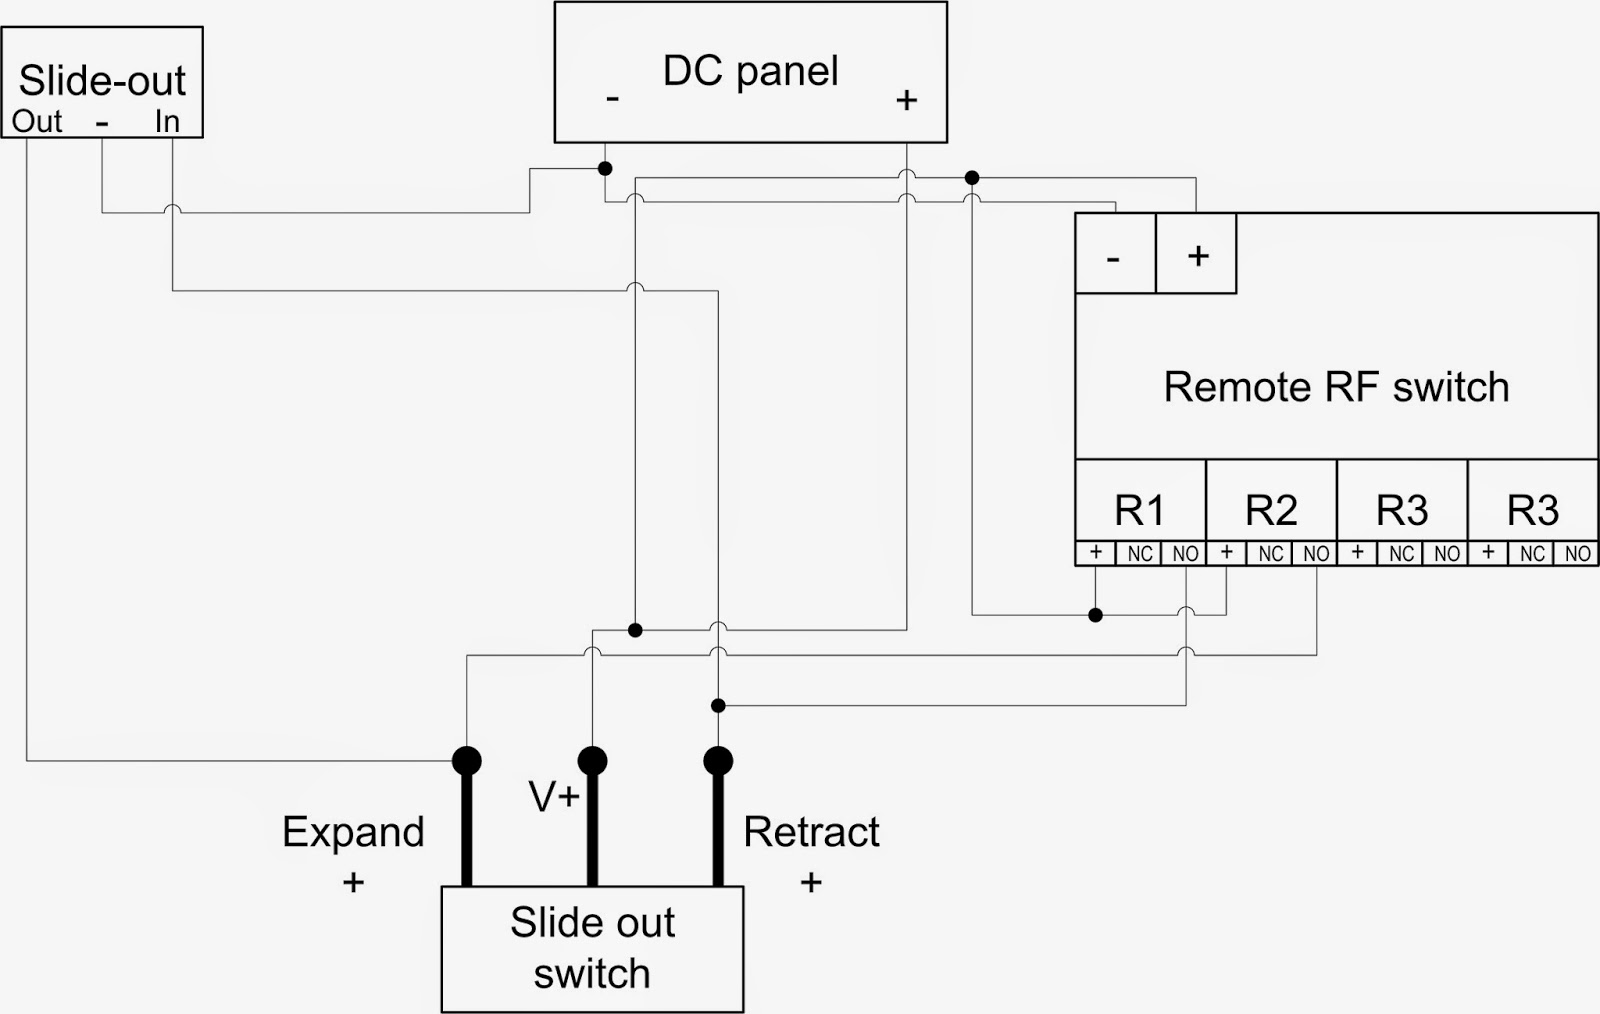 remoteRF my rv mods remote control for slide out Single Phase Motor Wiring Diagrams at mifinder.co